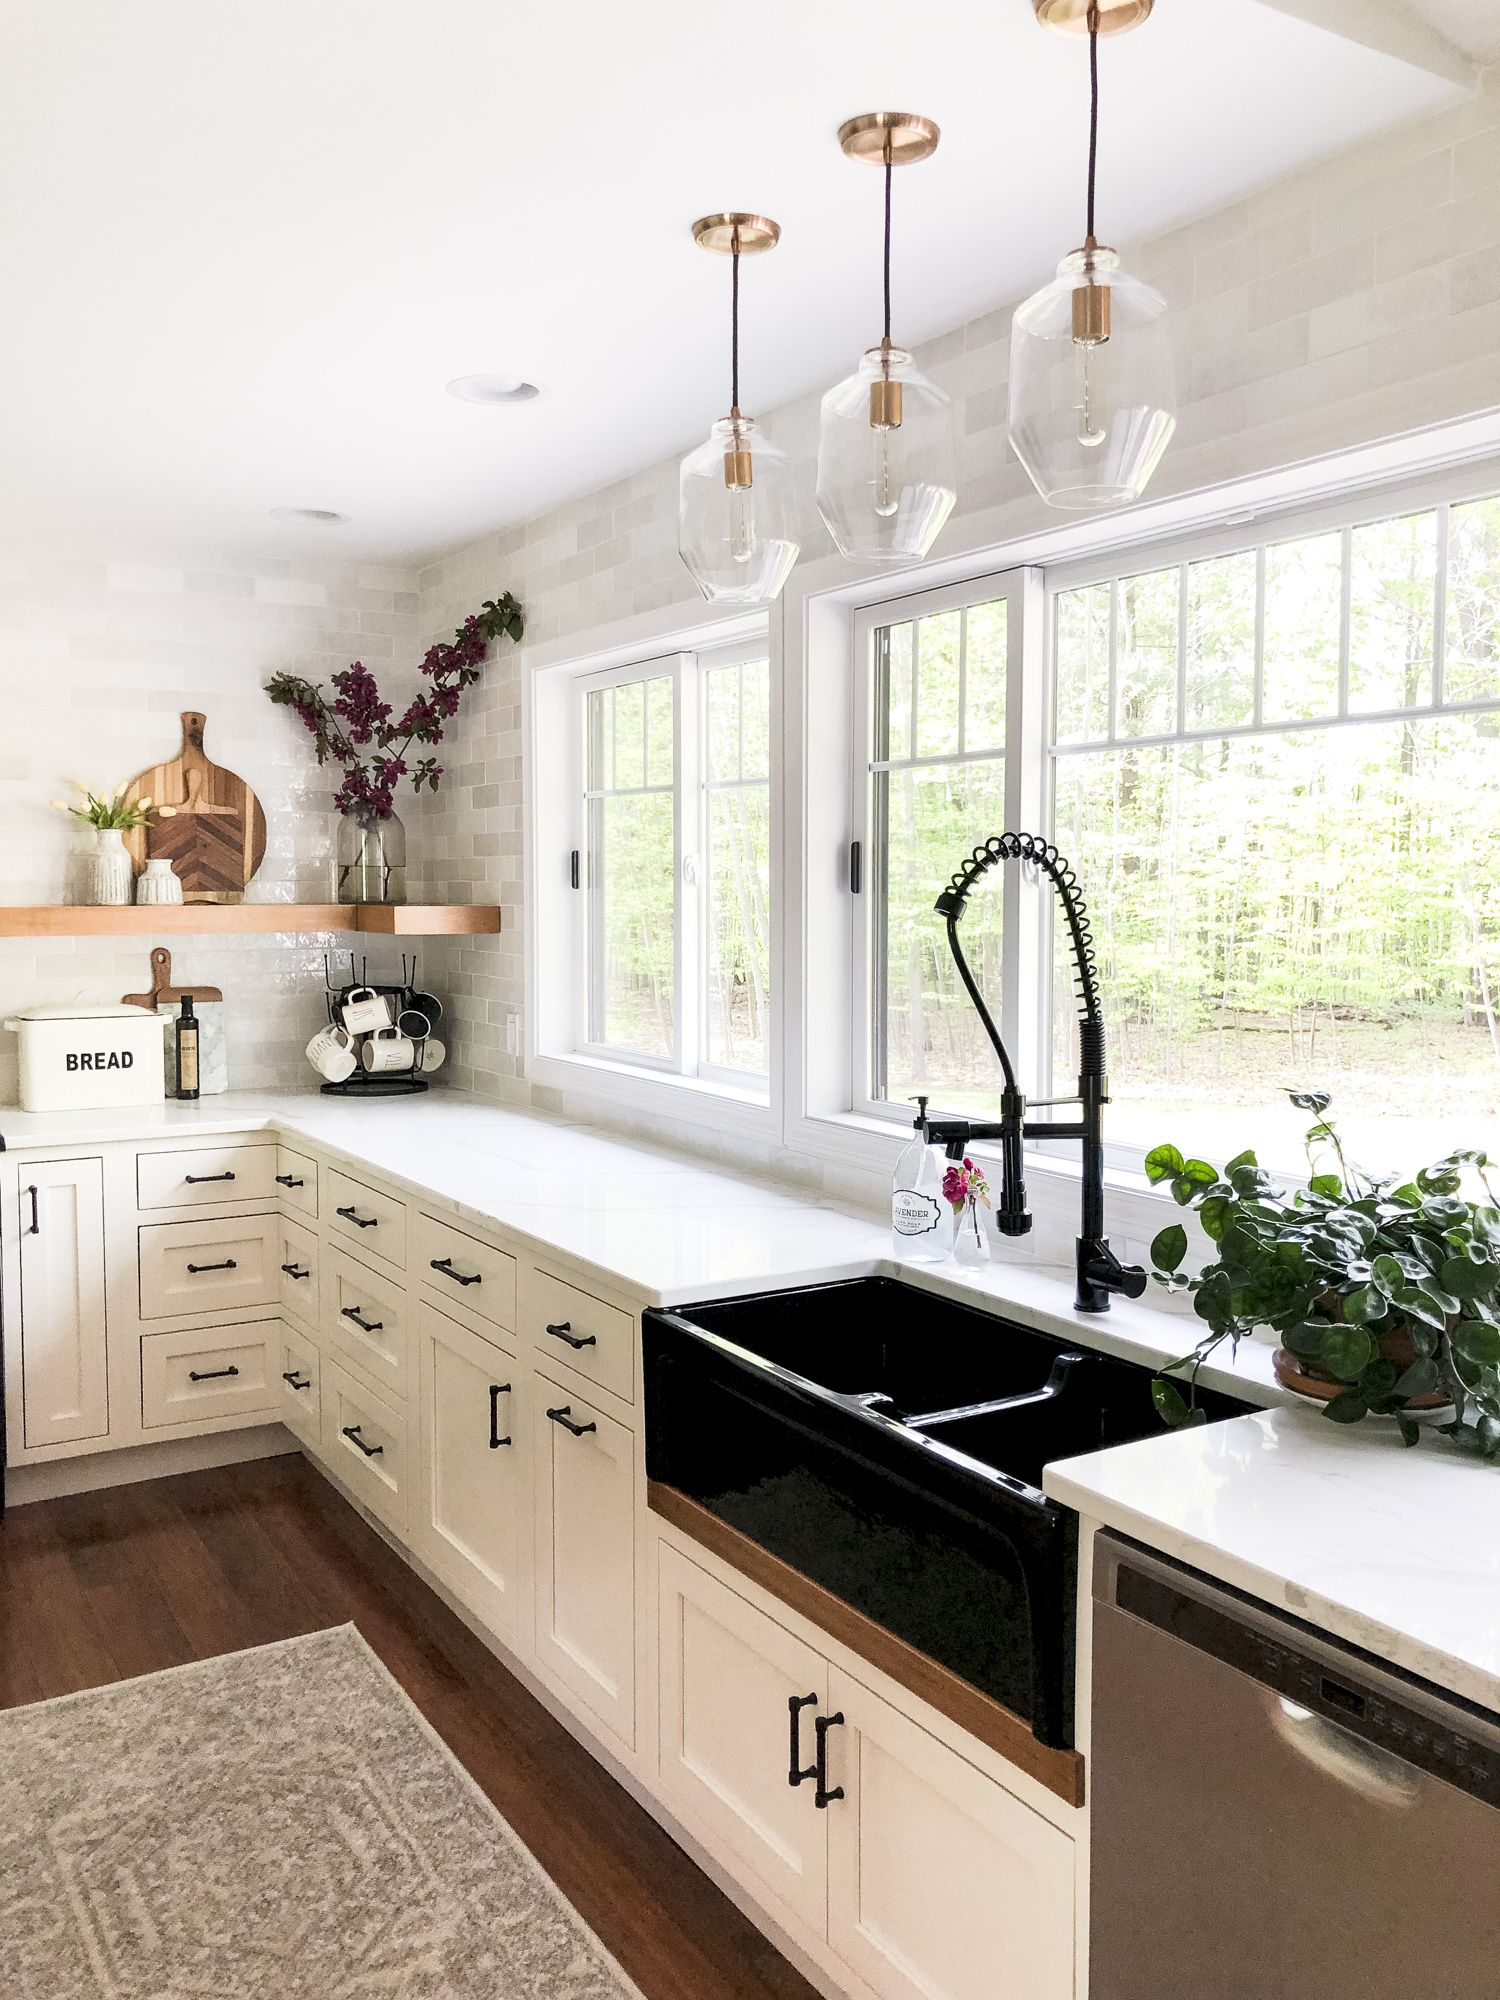 Designing A Modern Farmhouse Kitchen With A Black Farmhouse Sink Kitchen Remodel Design Diy Kitchen Remodel New Kitchen Cabinets